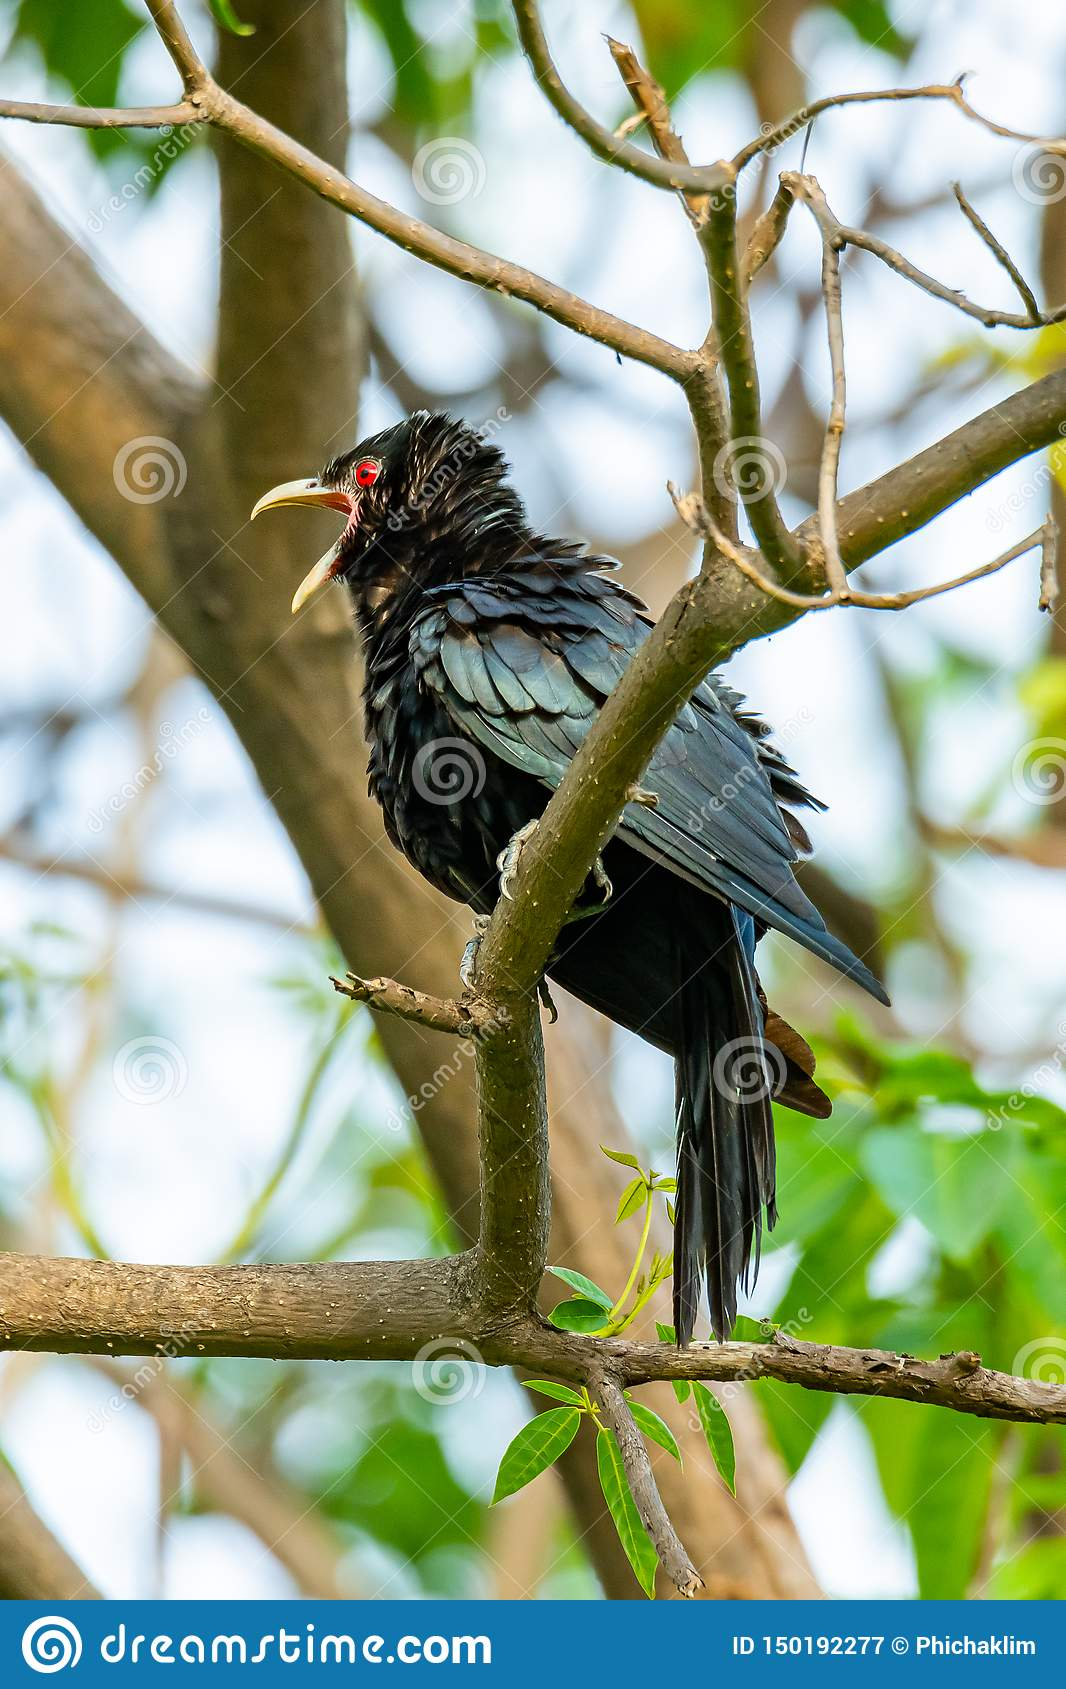 Male Asian Koel perching on a perch, opening its beak and puffing up its plumage